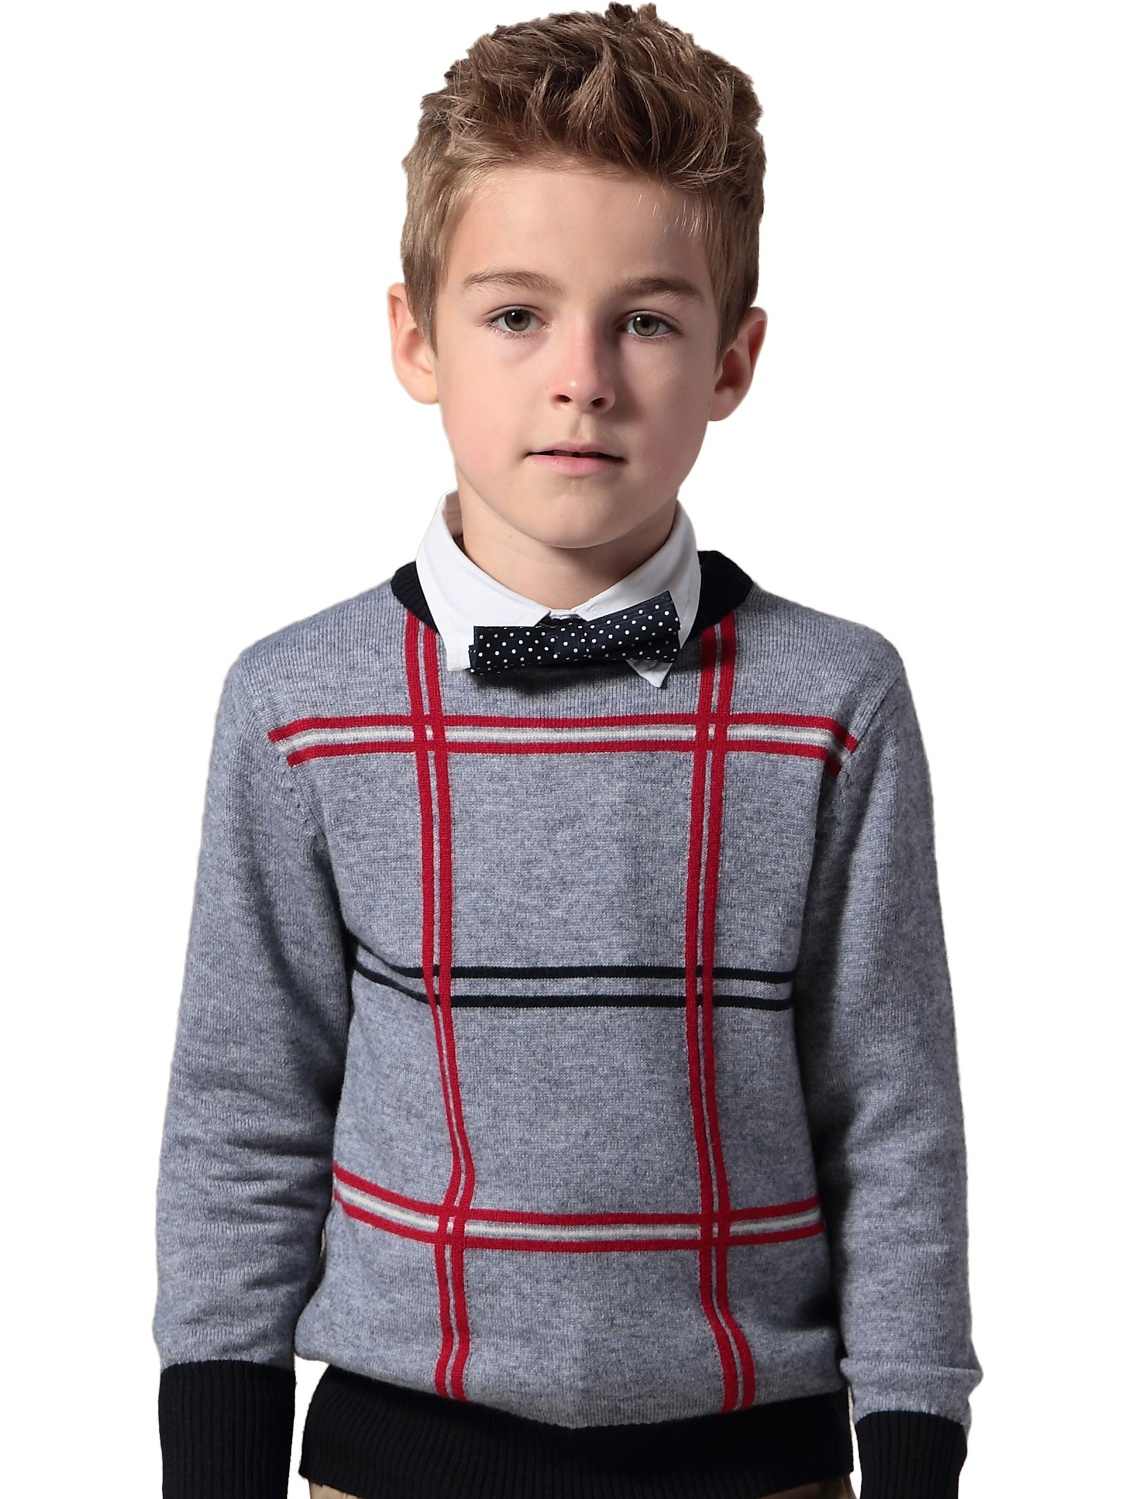 Leo&Lily Big Boys' Kids Wool Blends Checked Pullover Sweater Gray